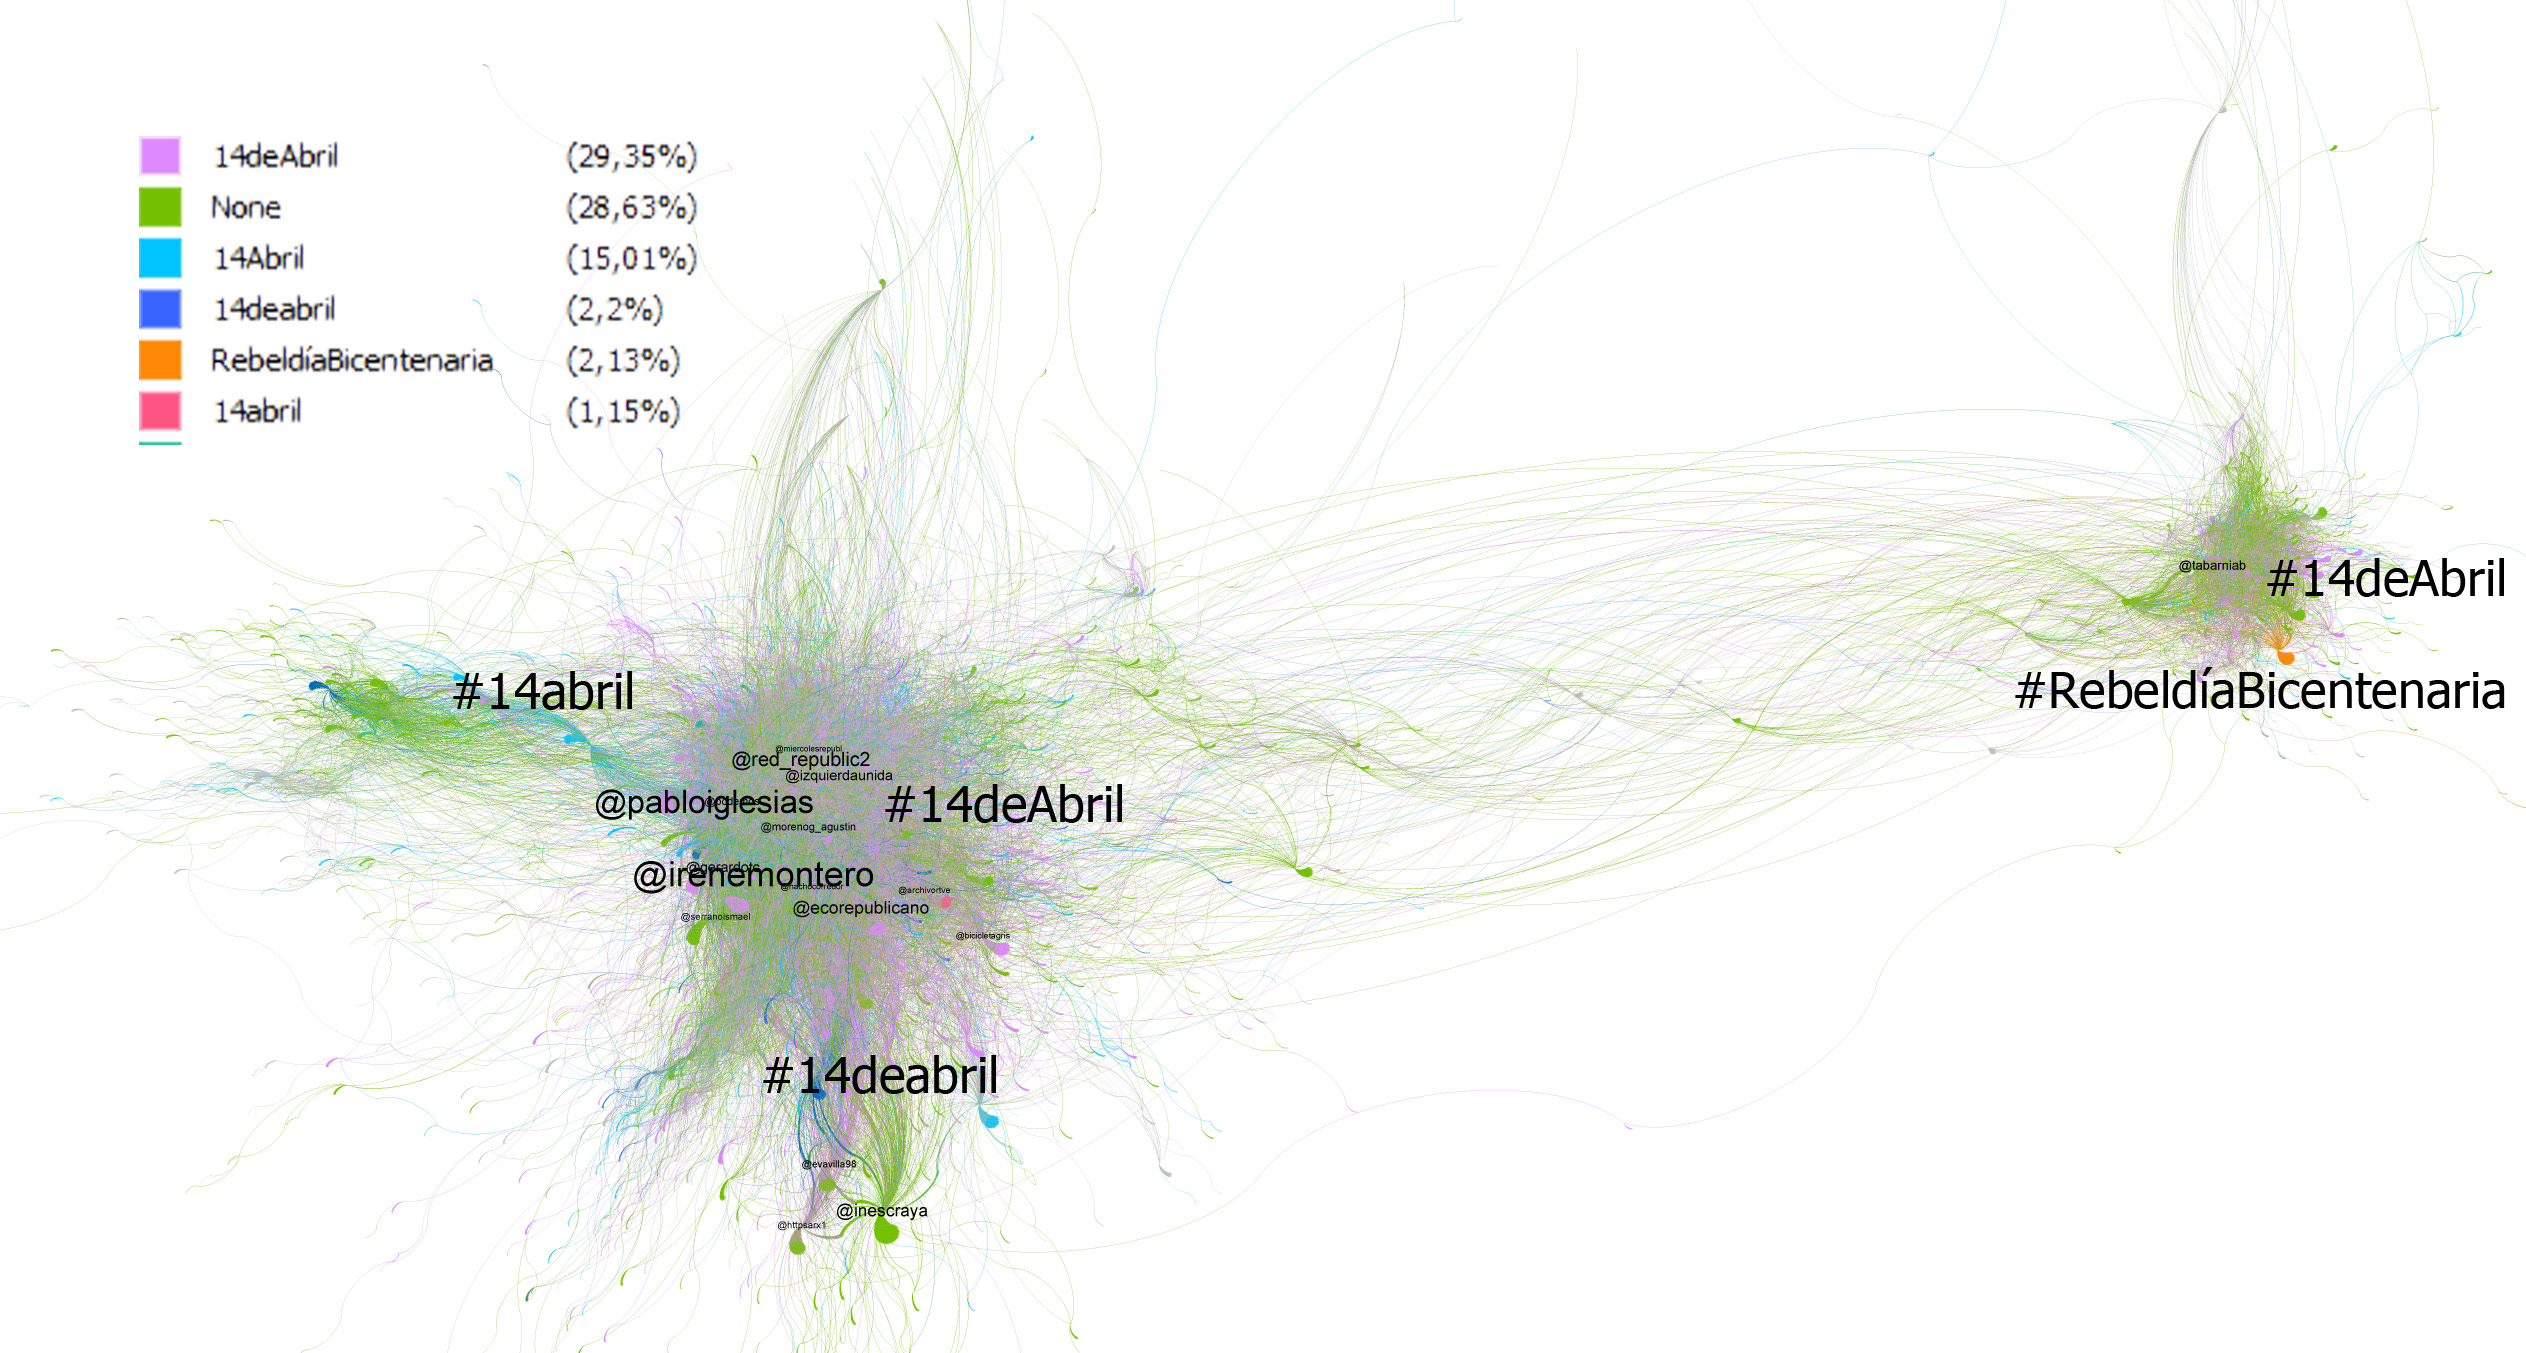 GRAPH 4. RTS BY HASHTAG IN THE CONTEXT OF COMMEMORATING THE REPUBLIC